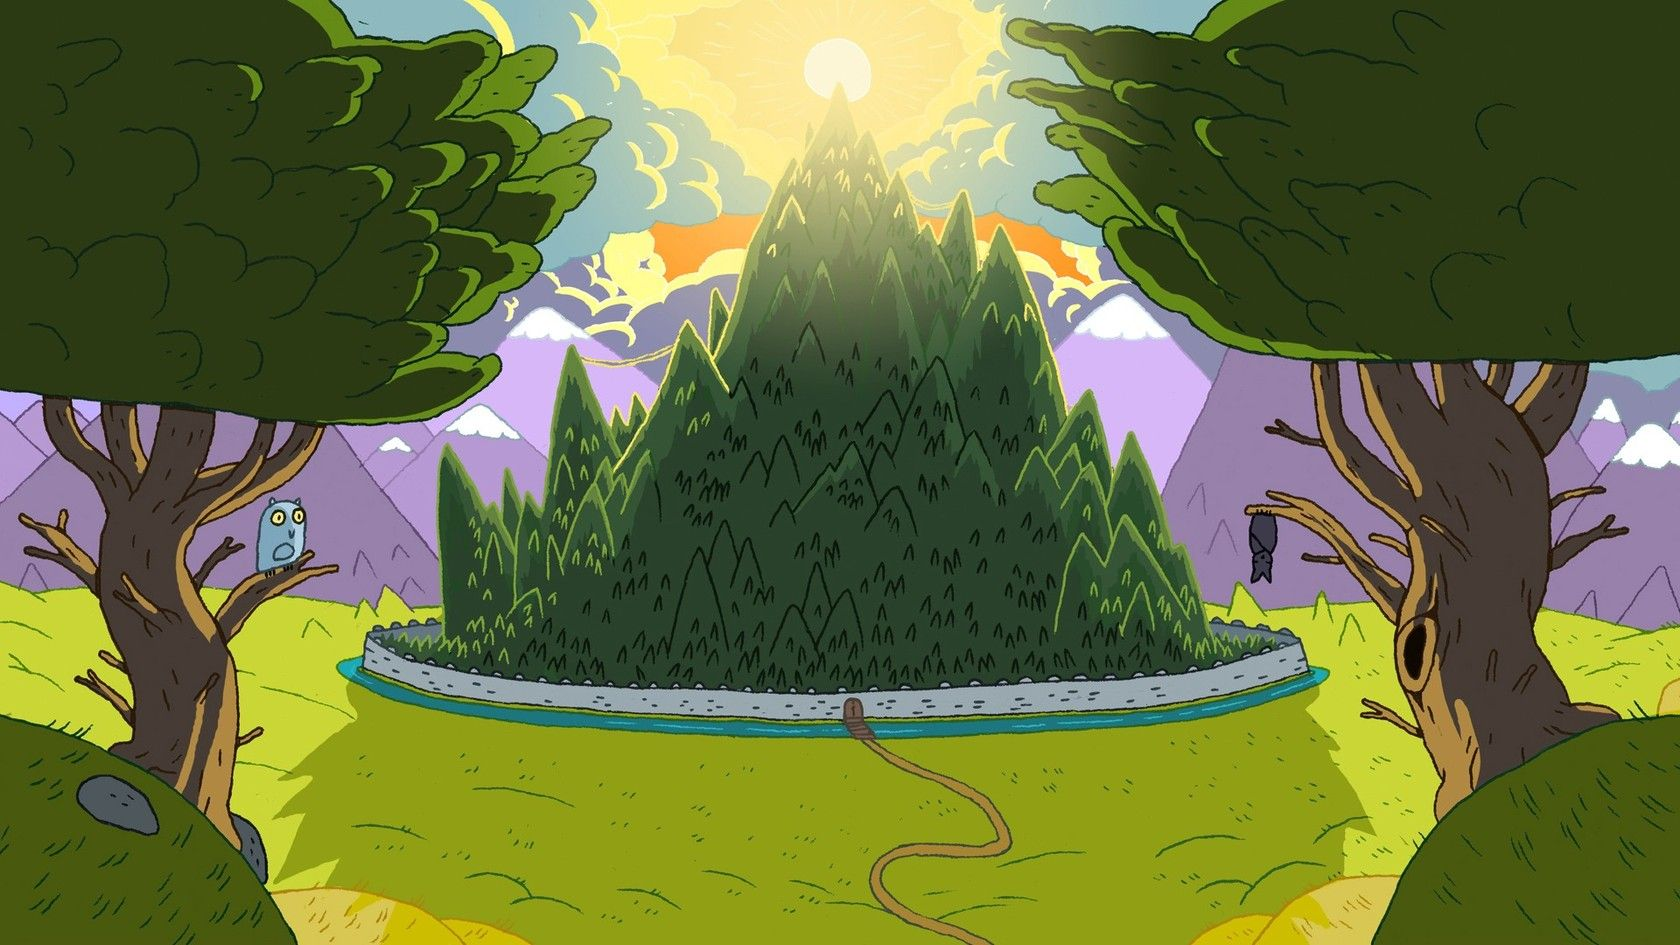 Cartoon Forest Adventure Time WallPaper HD - http ...